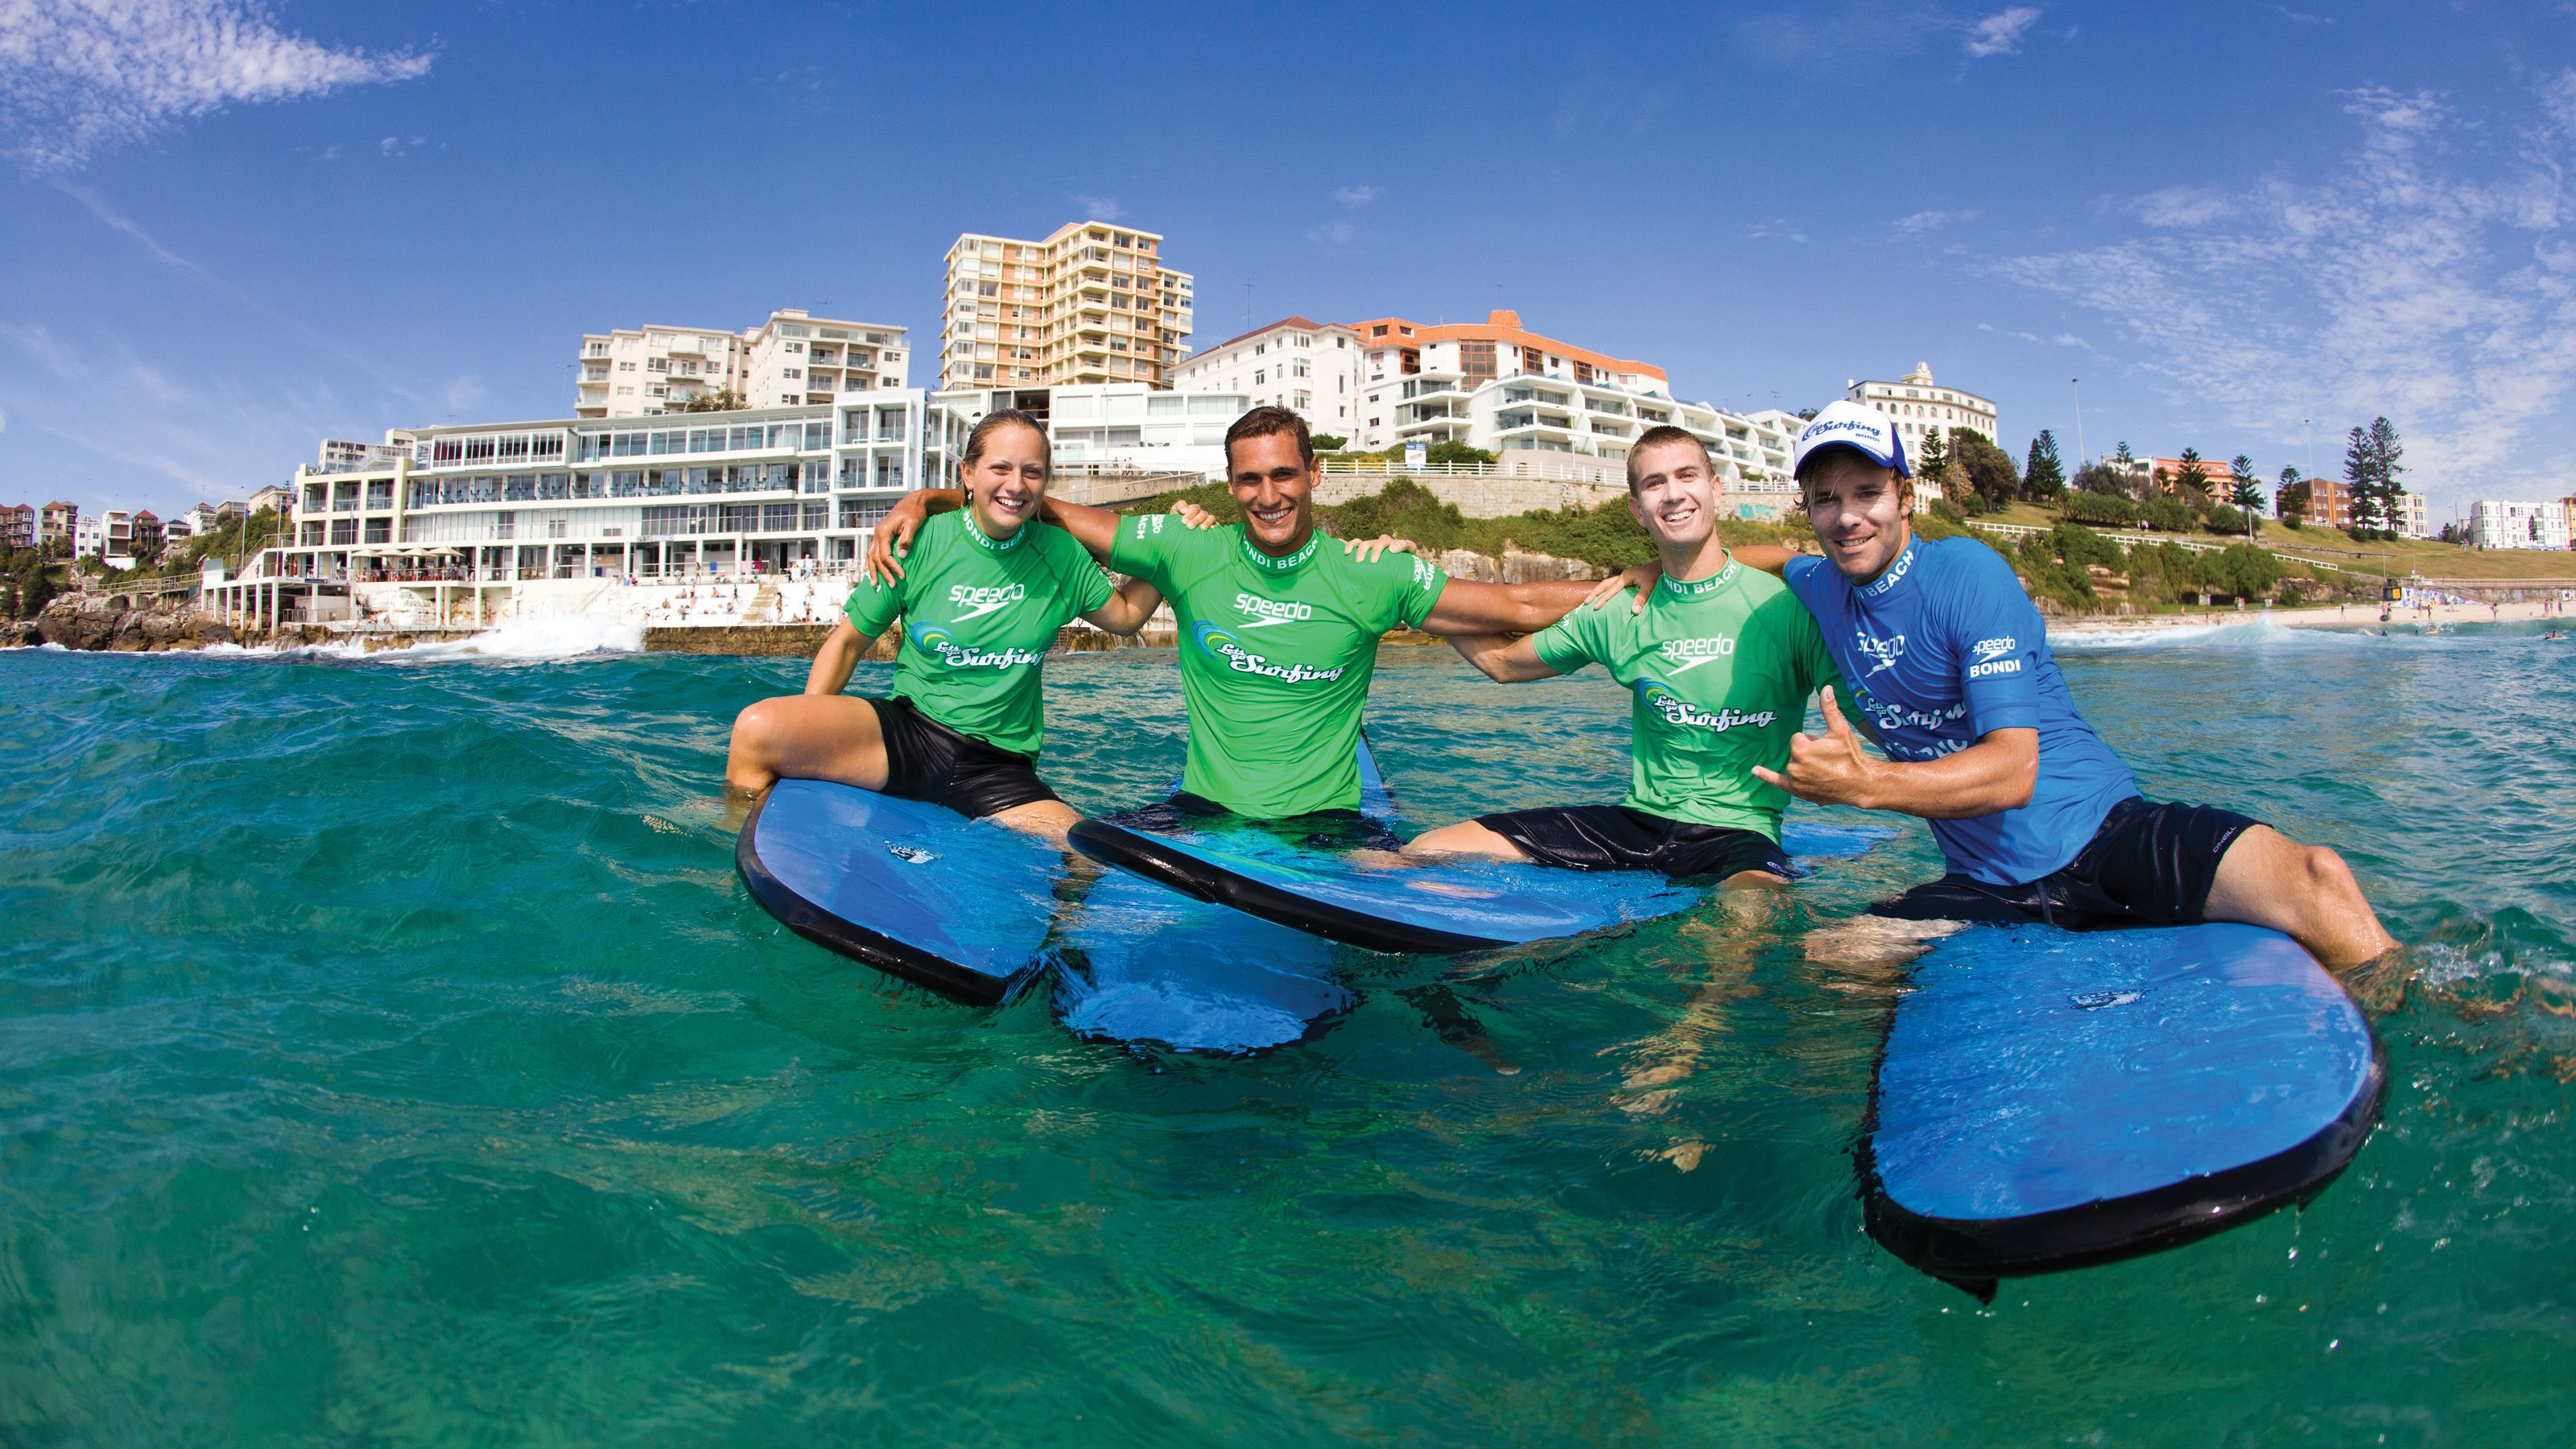 A group taking a photo as they sit on their surfboards on Bondi Beach